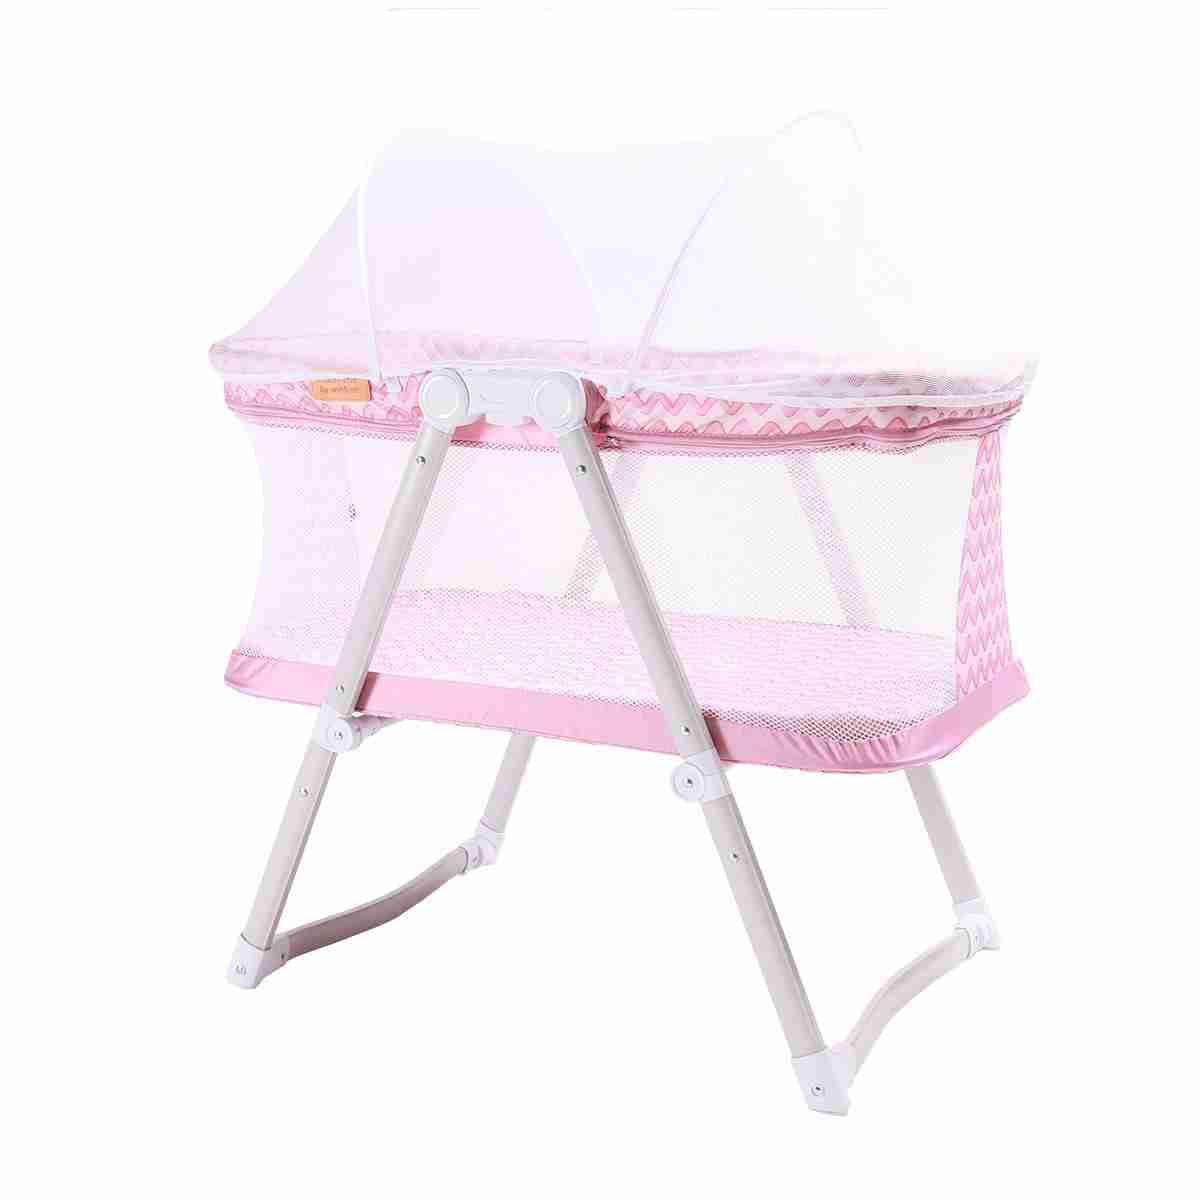 Pink Hush-Lite travel crib with fitted net